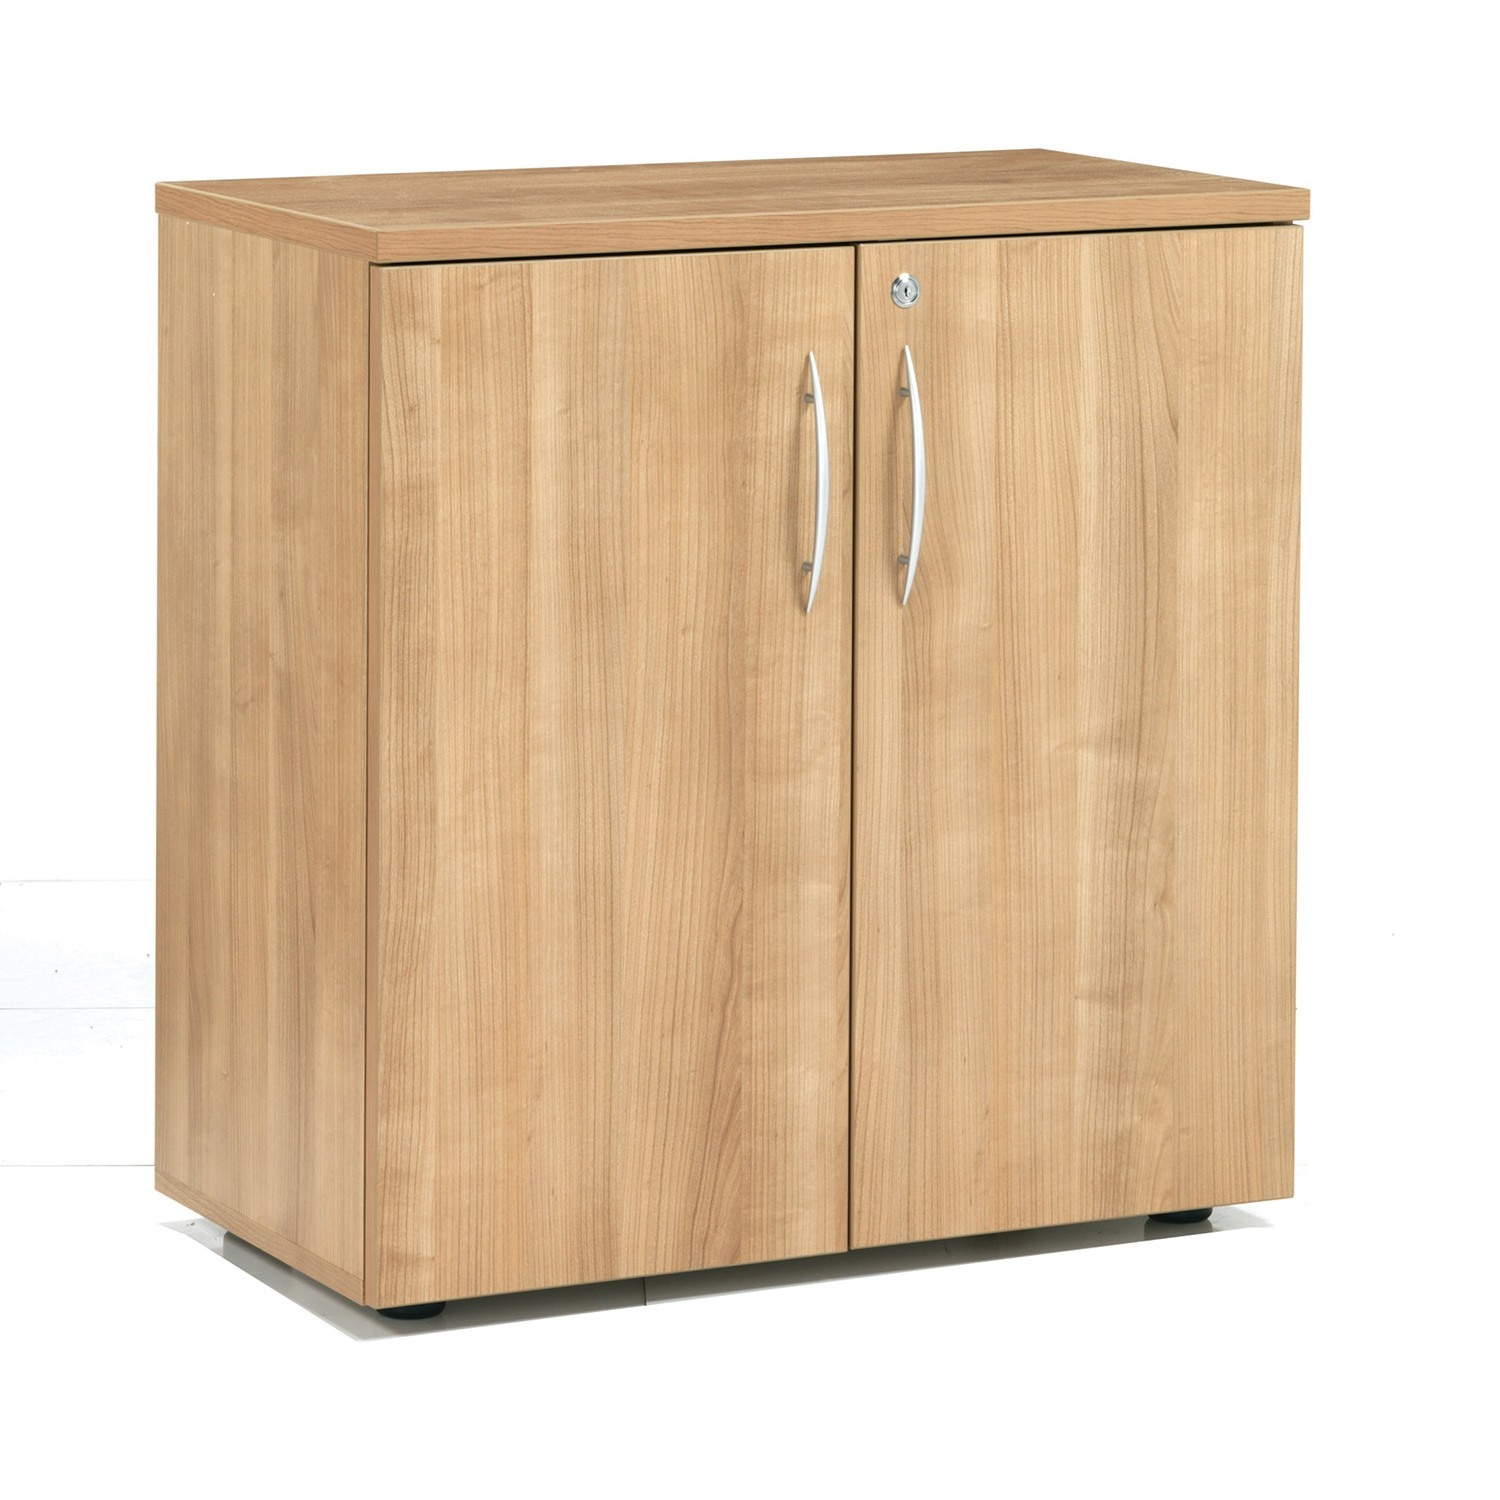 Low Storage Cabinets With Doors